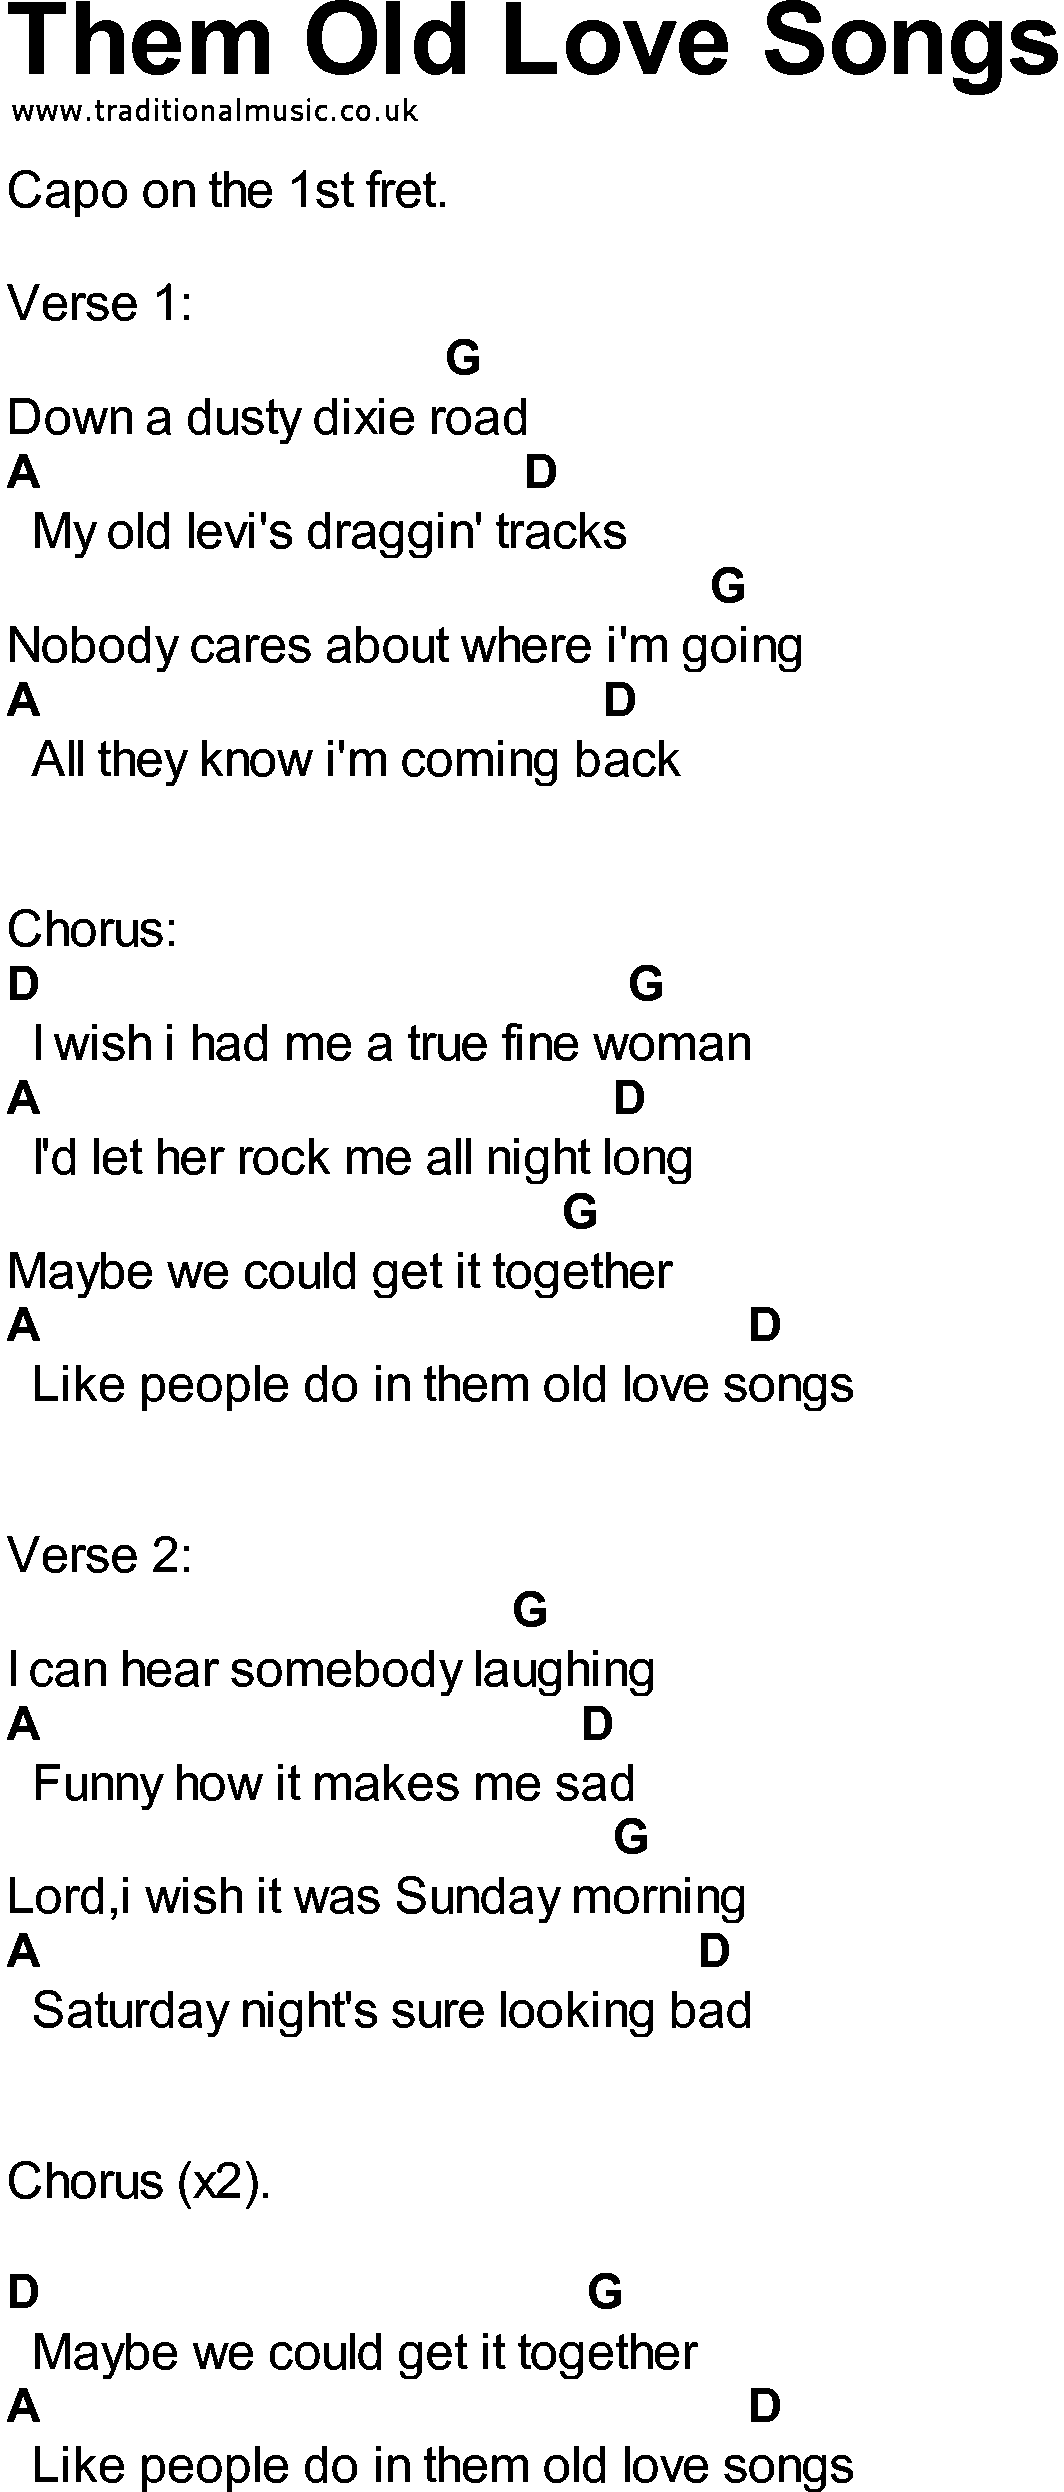 Songs with love in them